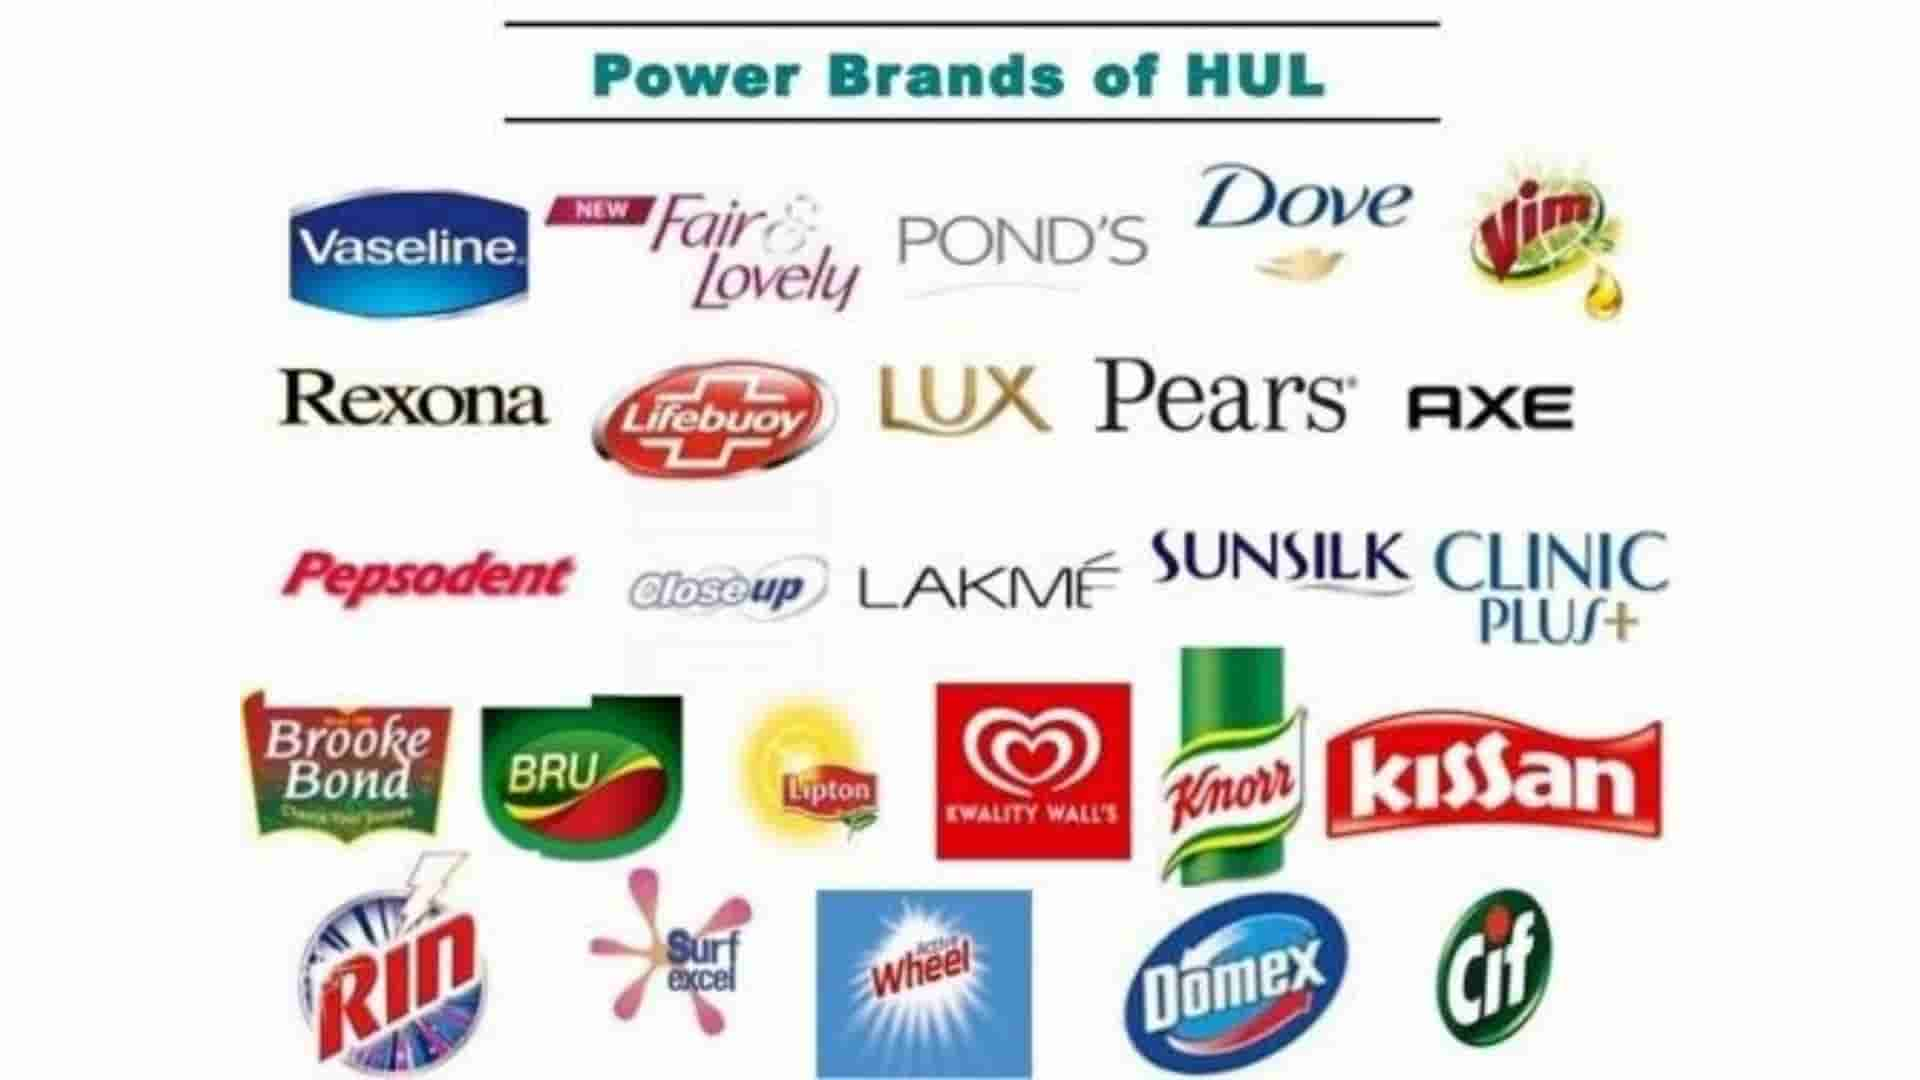 Brands And Products Of Hindustan Unilever (HUL)